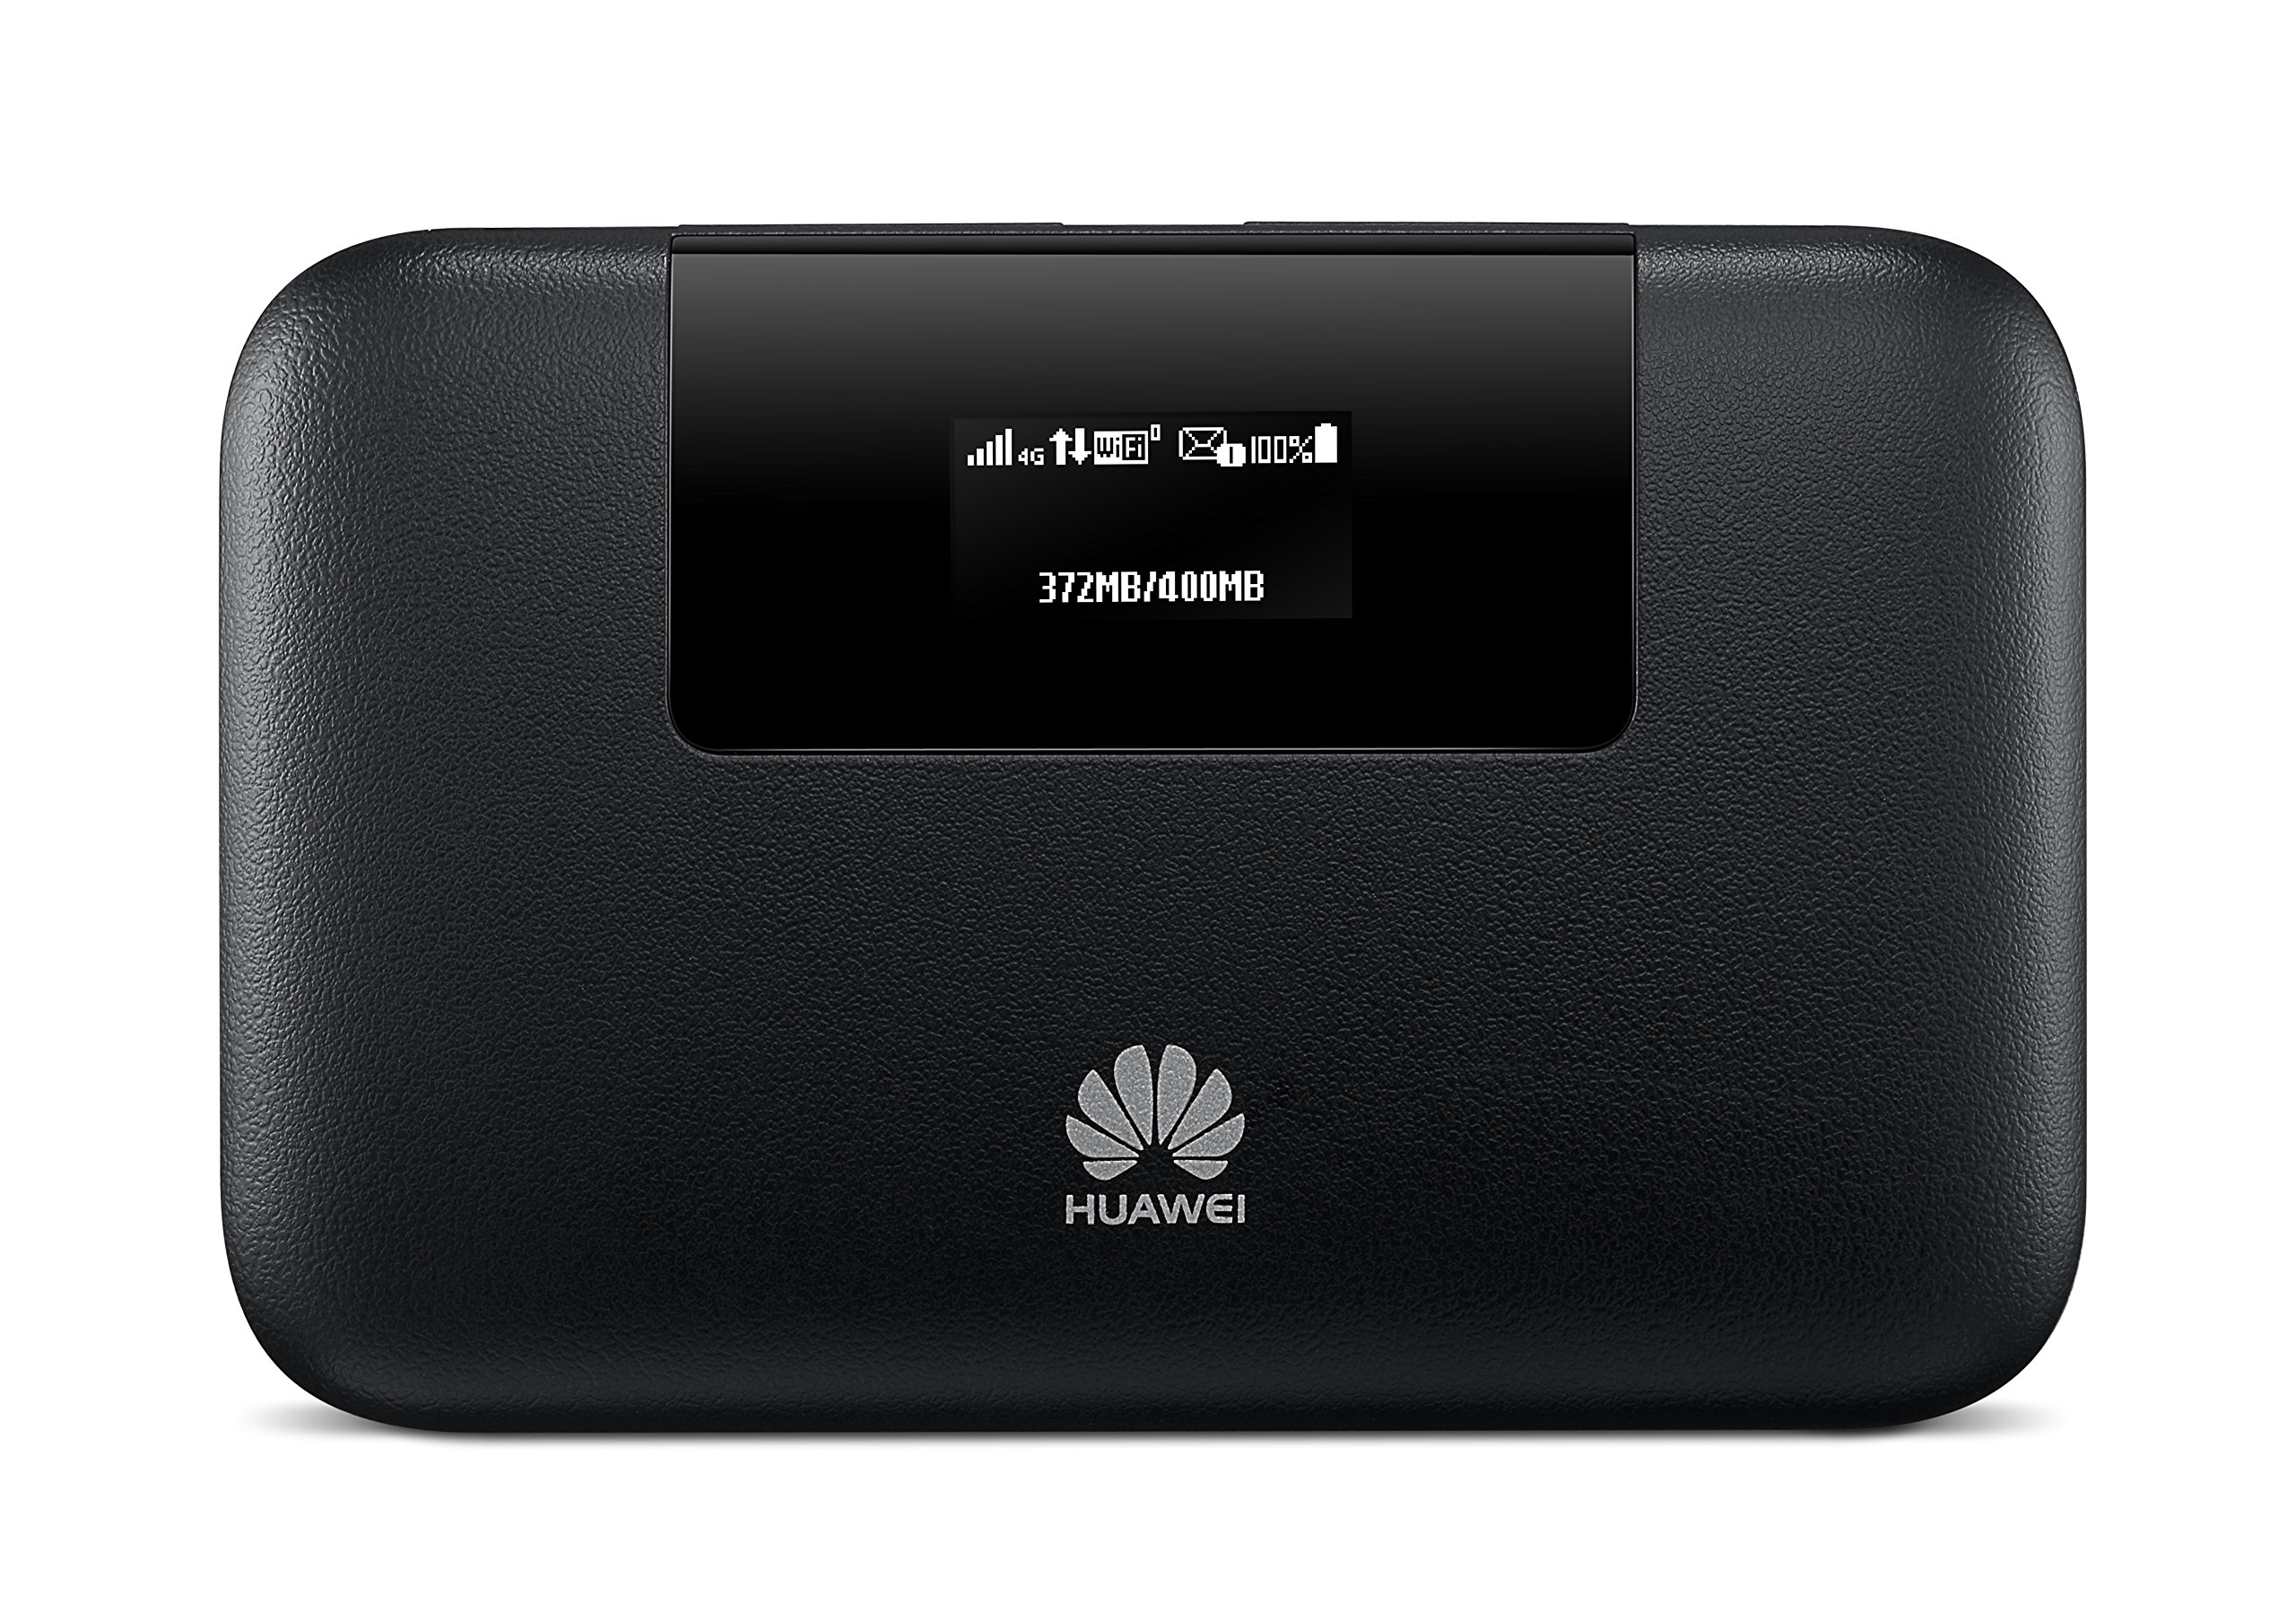 Huawei E5770s-320 150 Mbps 4G LTE Mobile WiFi Hotspot(4G LTE in Europe, Asia, Middle East, Africa & 3G globally, 20 hour) (Black) by Huawei